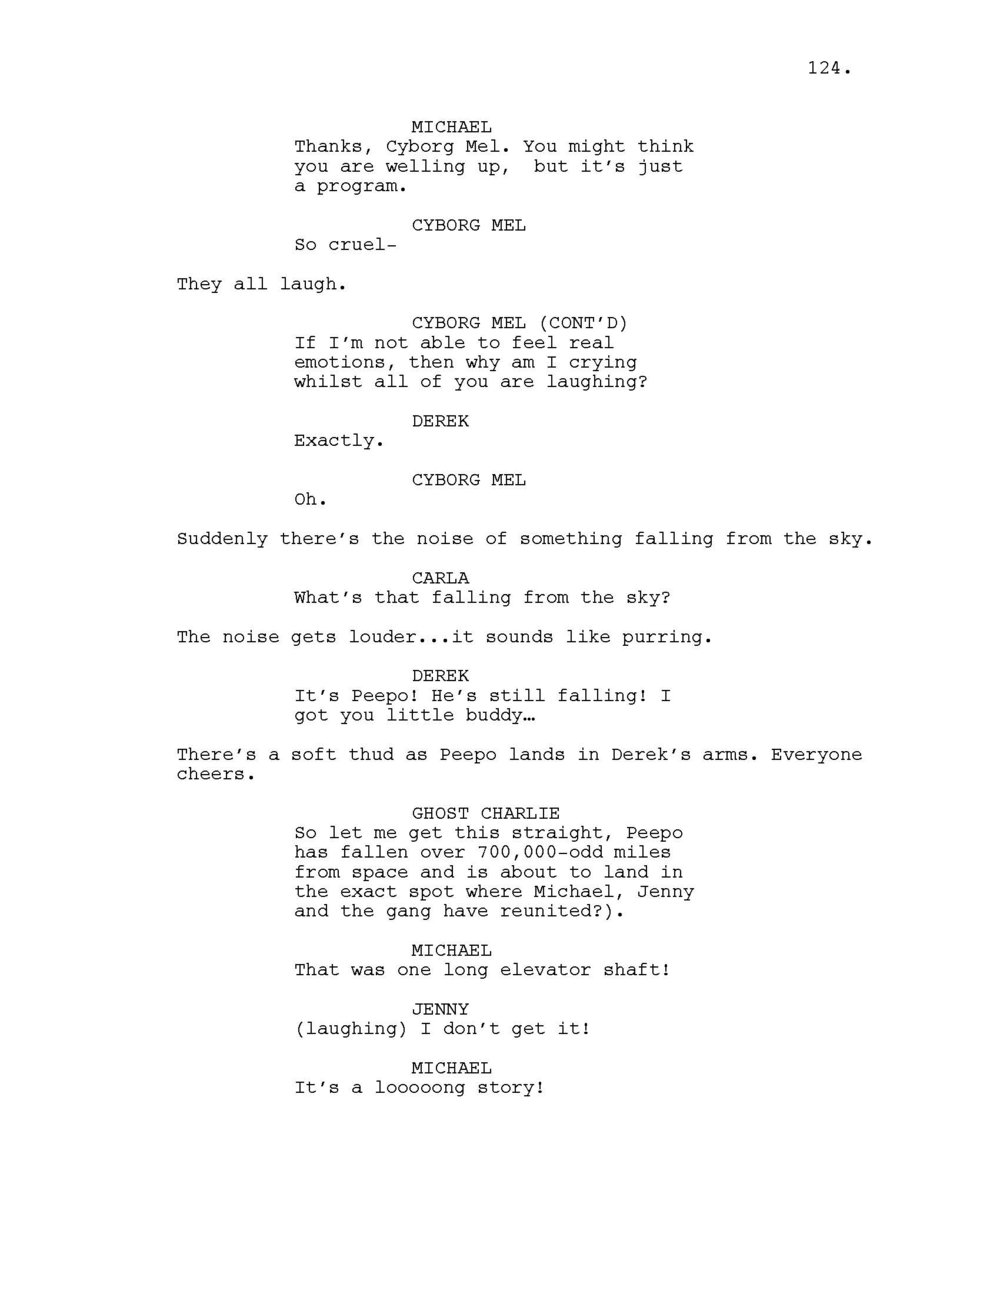 INVISIBLE WORLD SCRIPT_Page_125.jpg